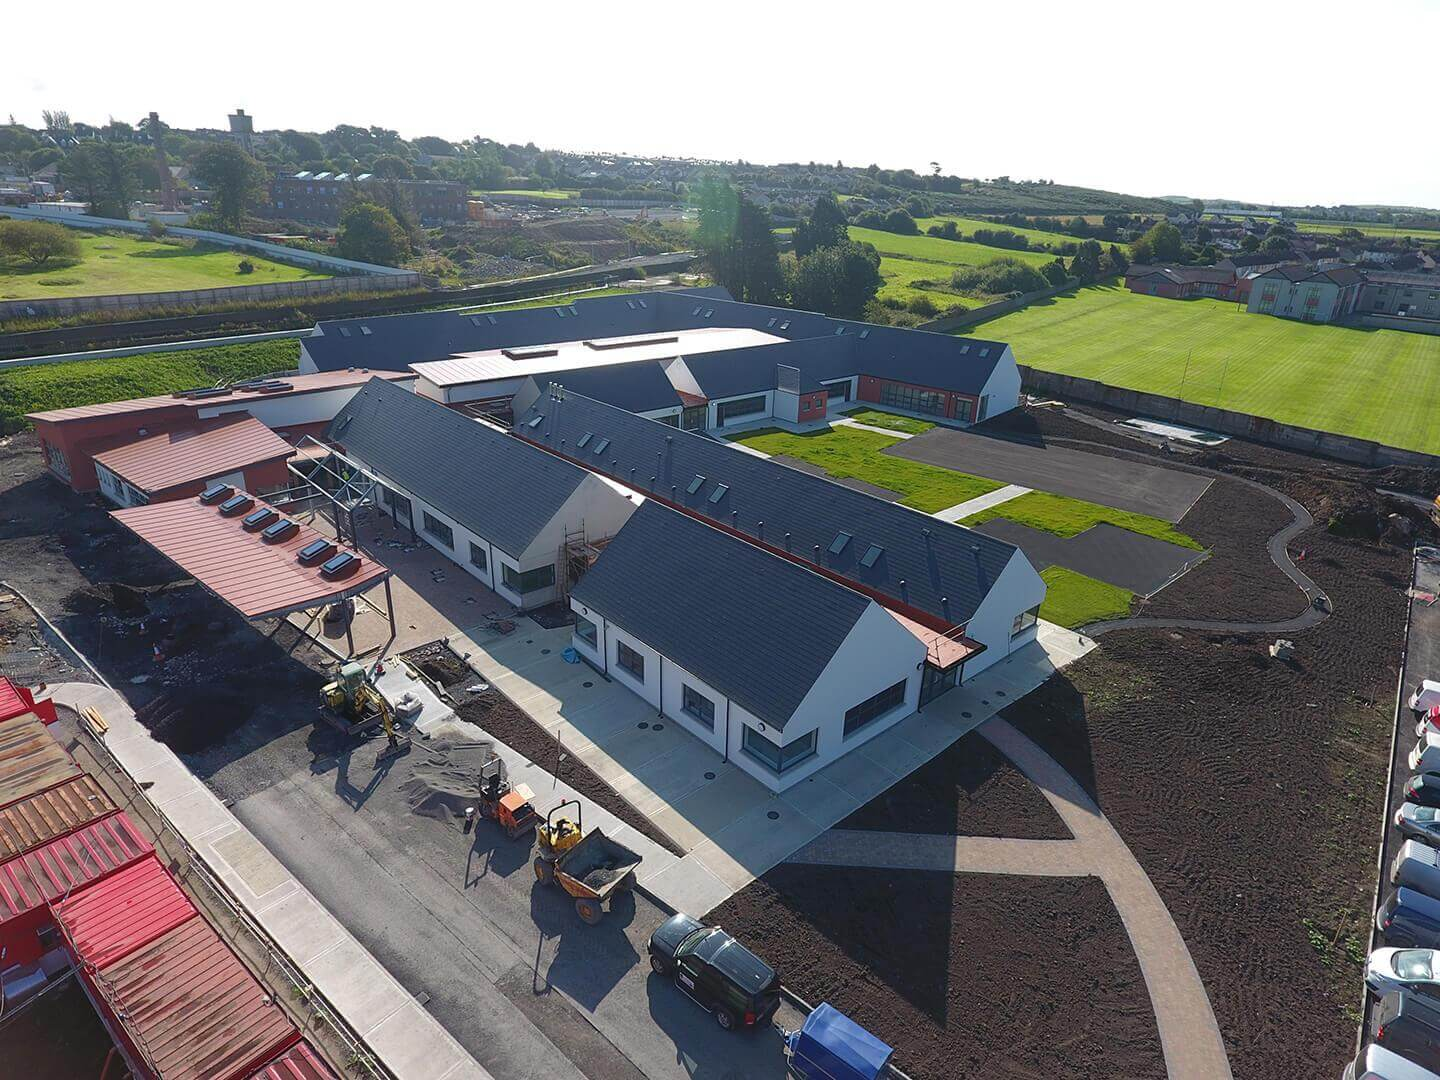 New St. Martin's Special School, Ballytruckle, Co. Waterford